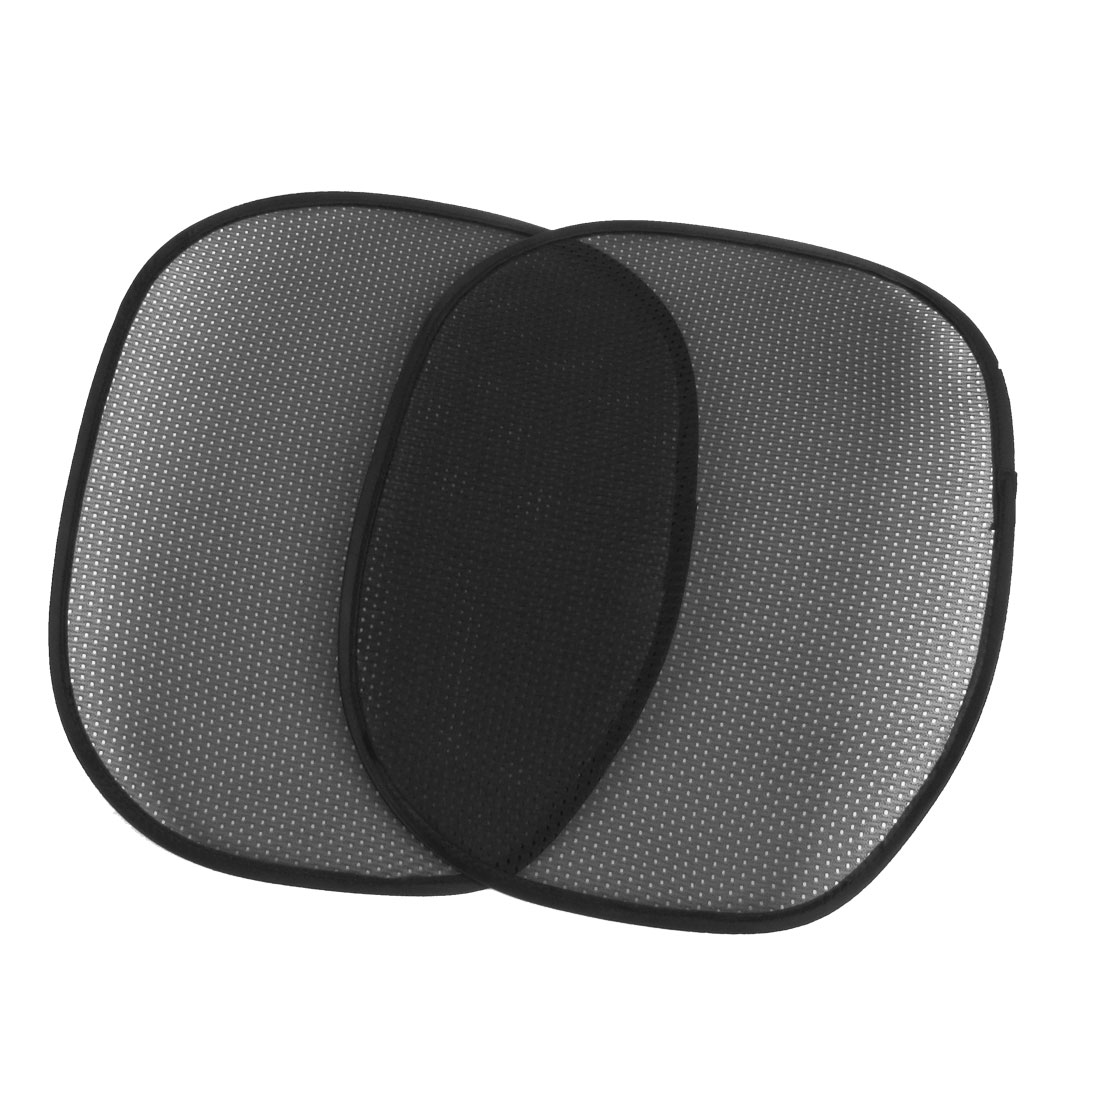 2 x Black Mesh Design Nylon Side Rear Window Sunshade Sun Shade for Car